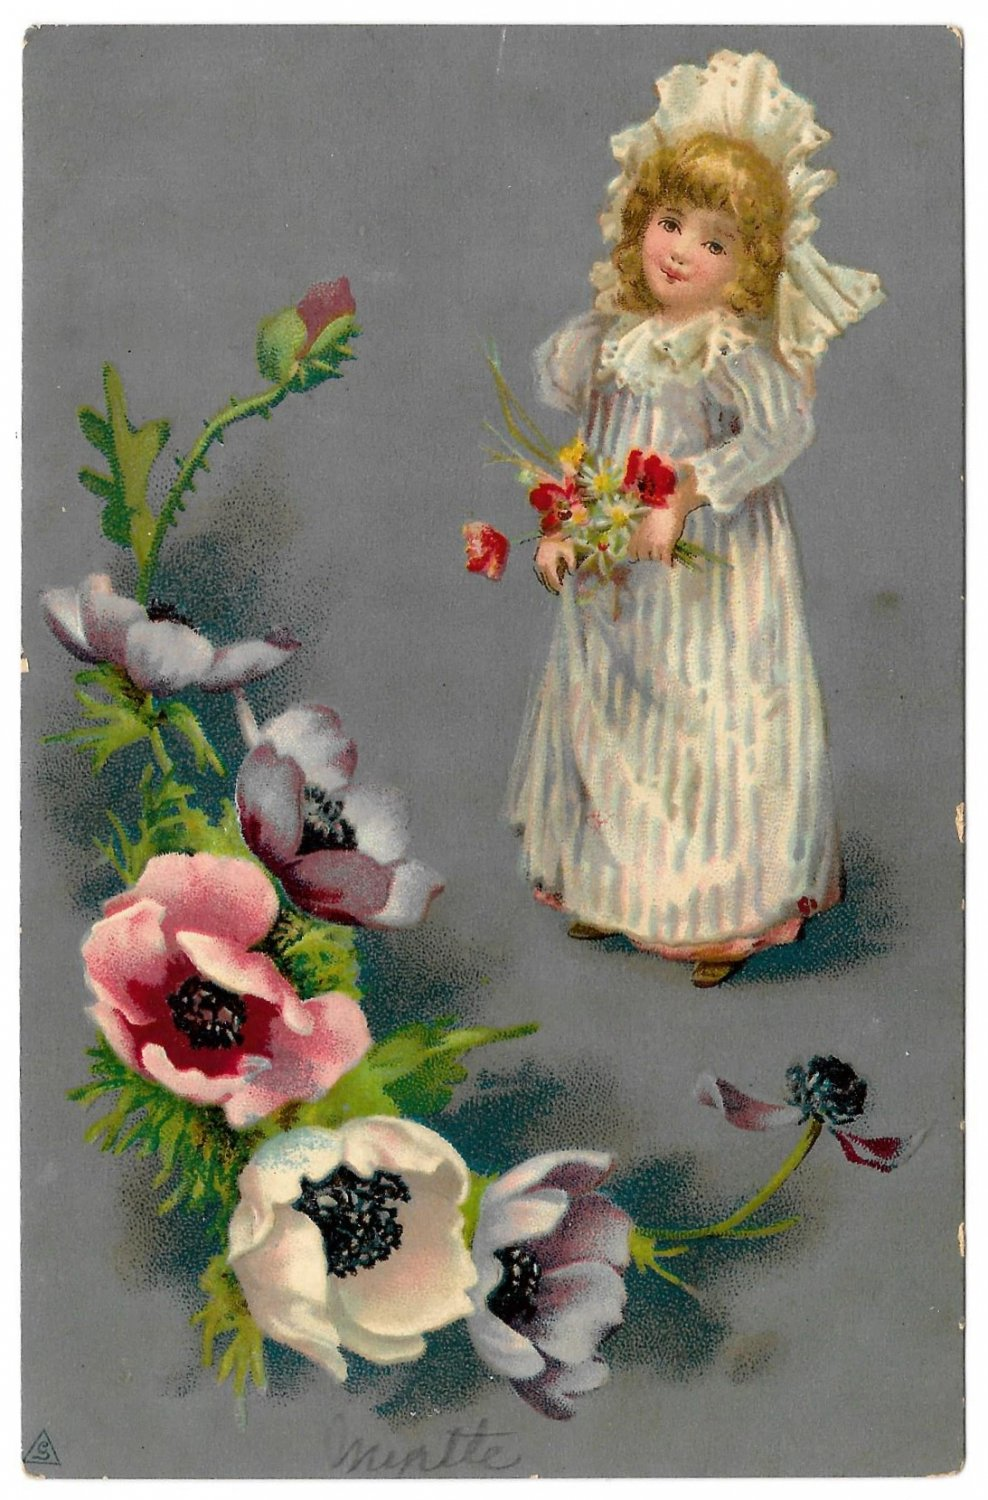 Little Girl in Nightdress and Cap with Poppies Vintage Embossed Postcard